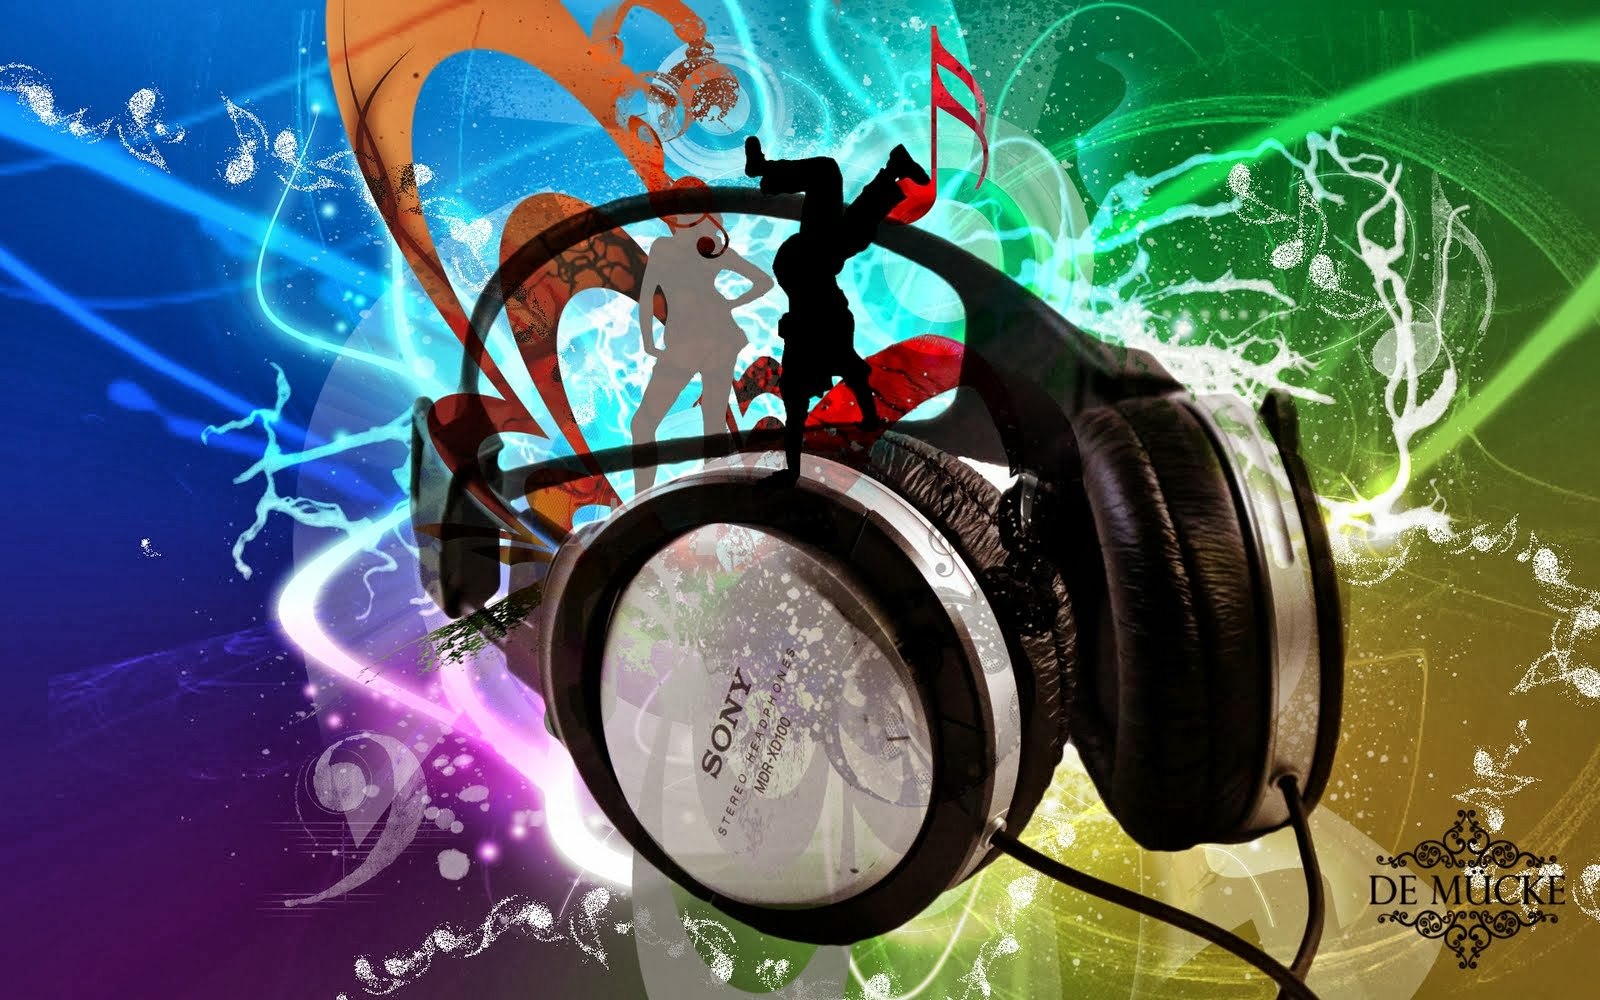 Hd Wallpapers Blog: Cool Music Background Wallpapers